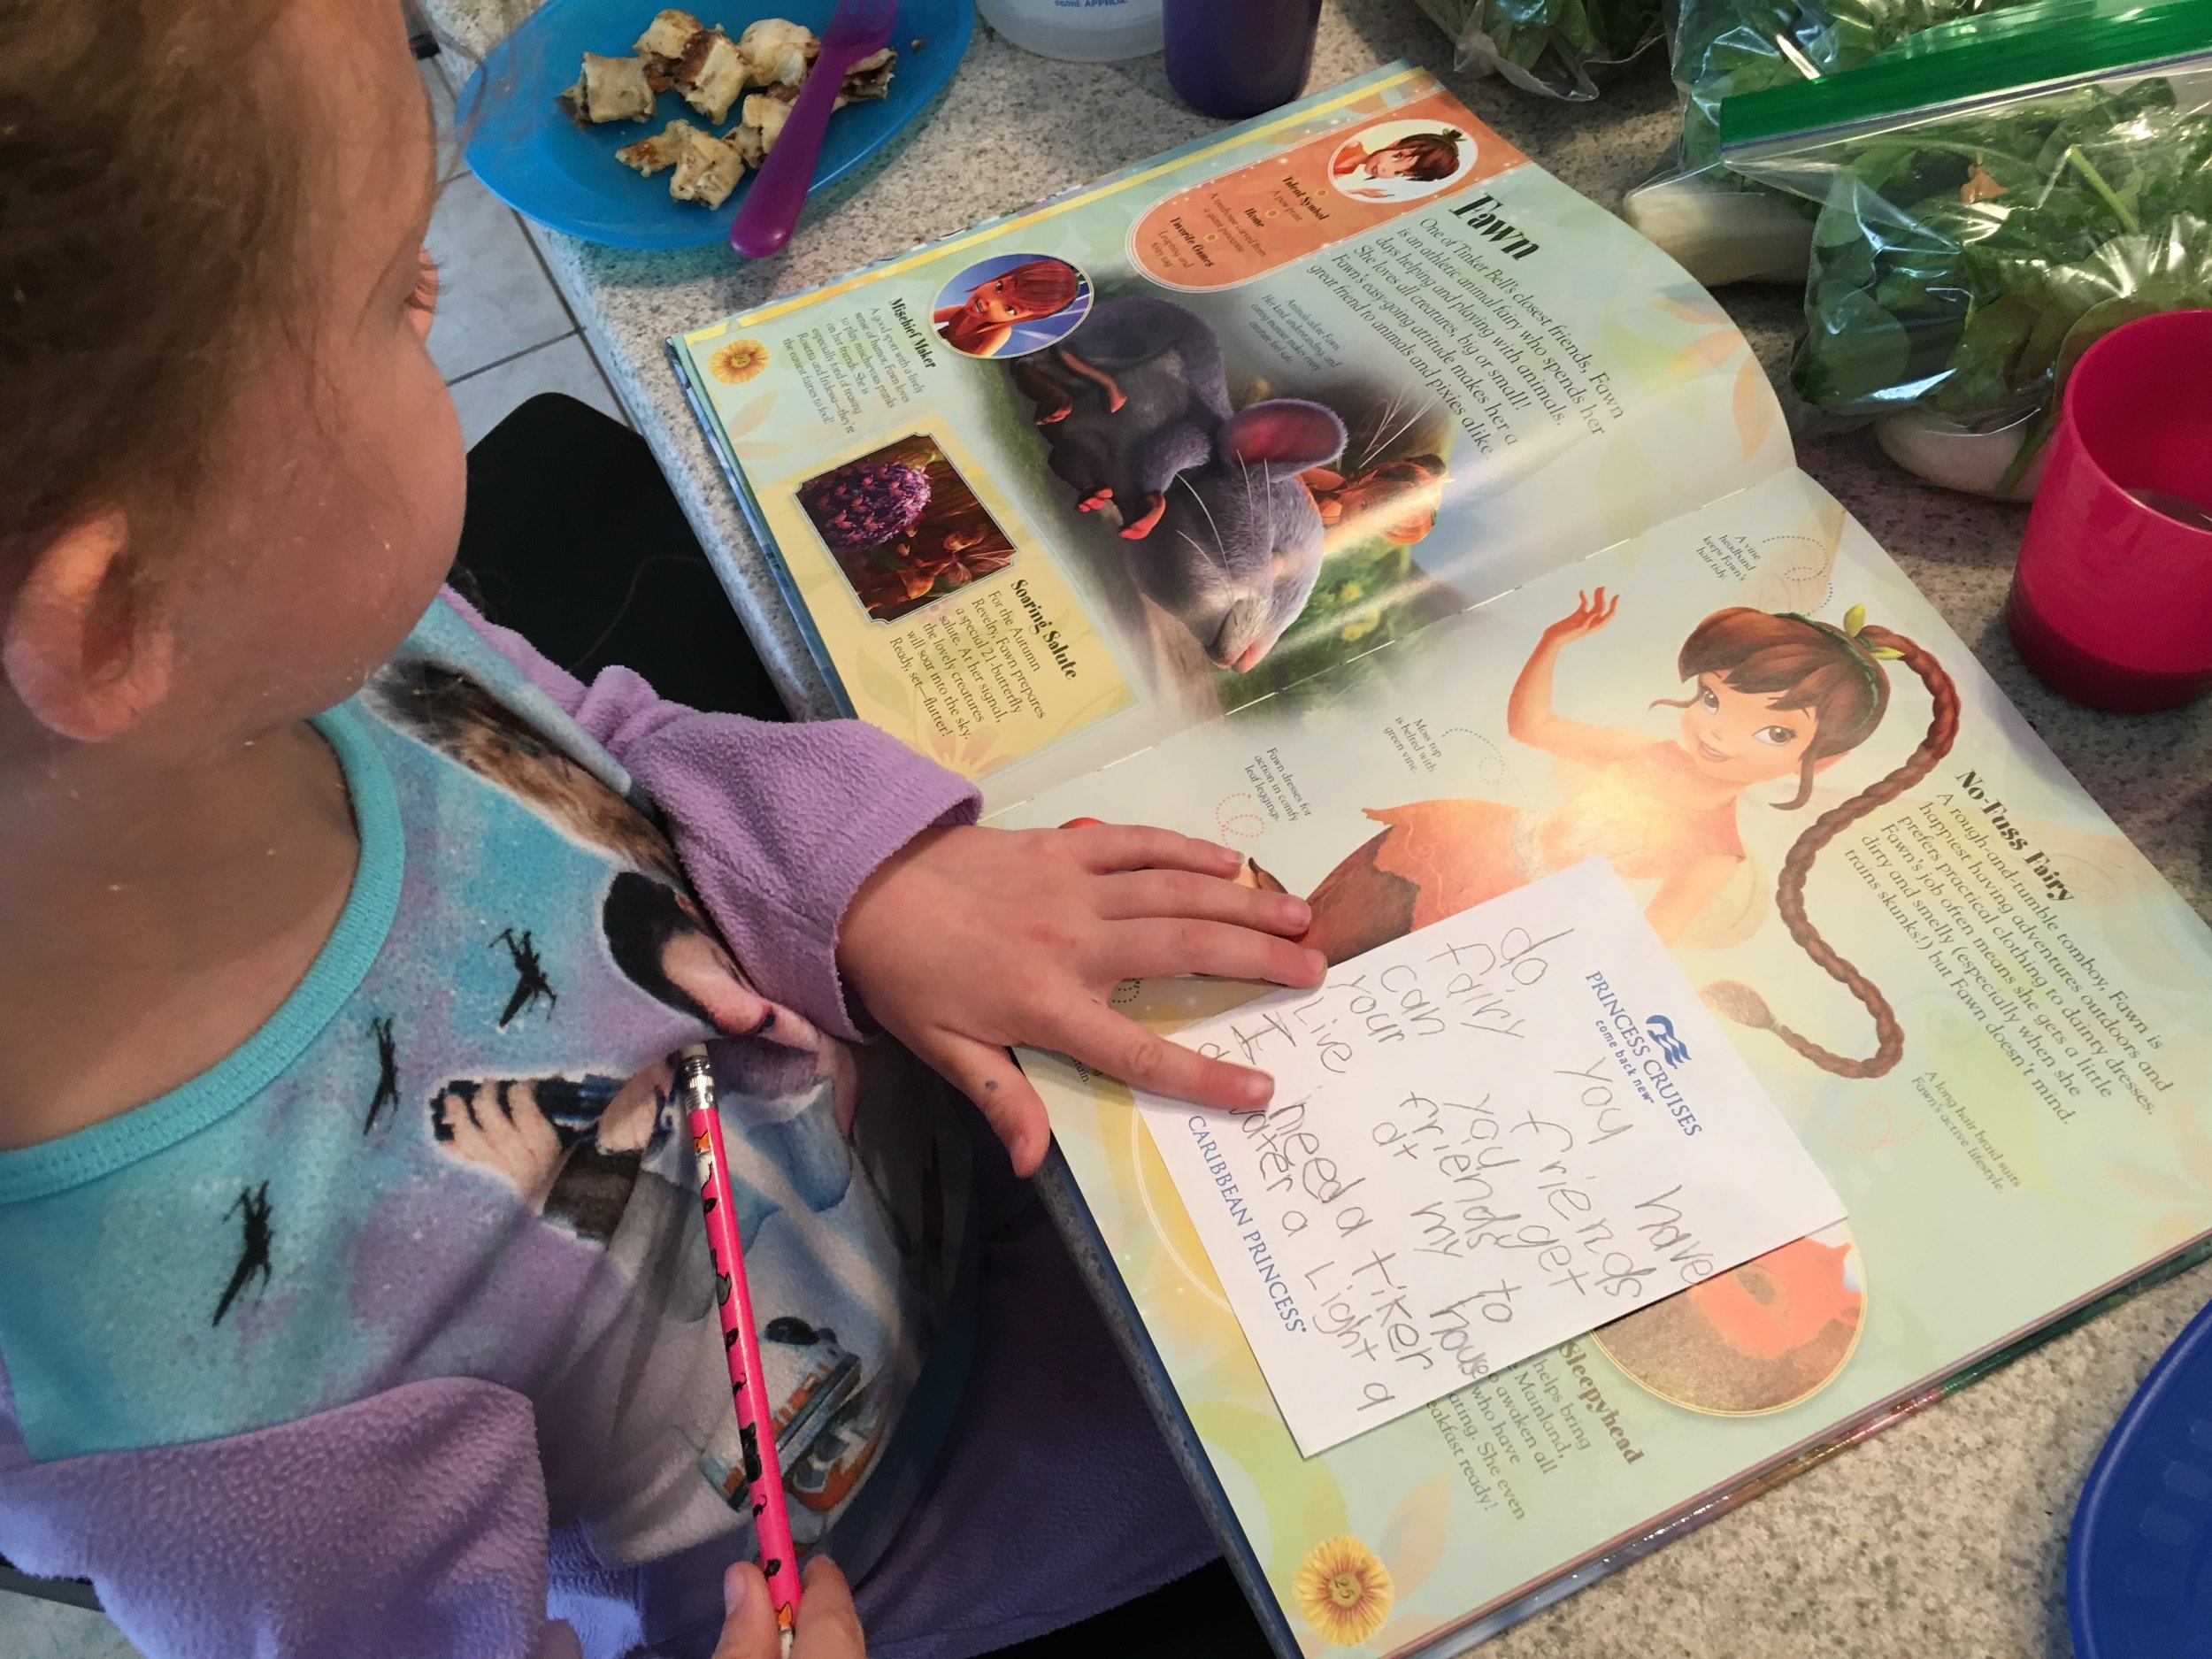 """Pouring over the fairy encyclopedia during breakfast while writing notes to Twanda """"do you have fairy friends, can you get your friends to live at my house? I need a Tinker, a Water, a light and an Animal Fairy."""""""